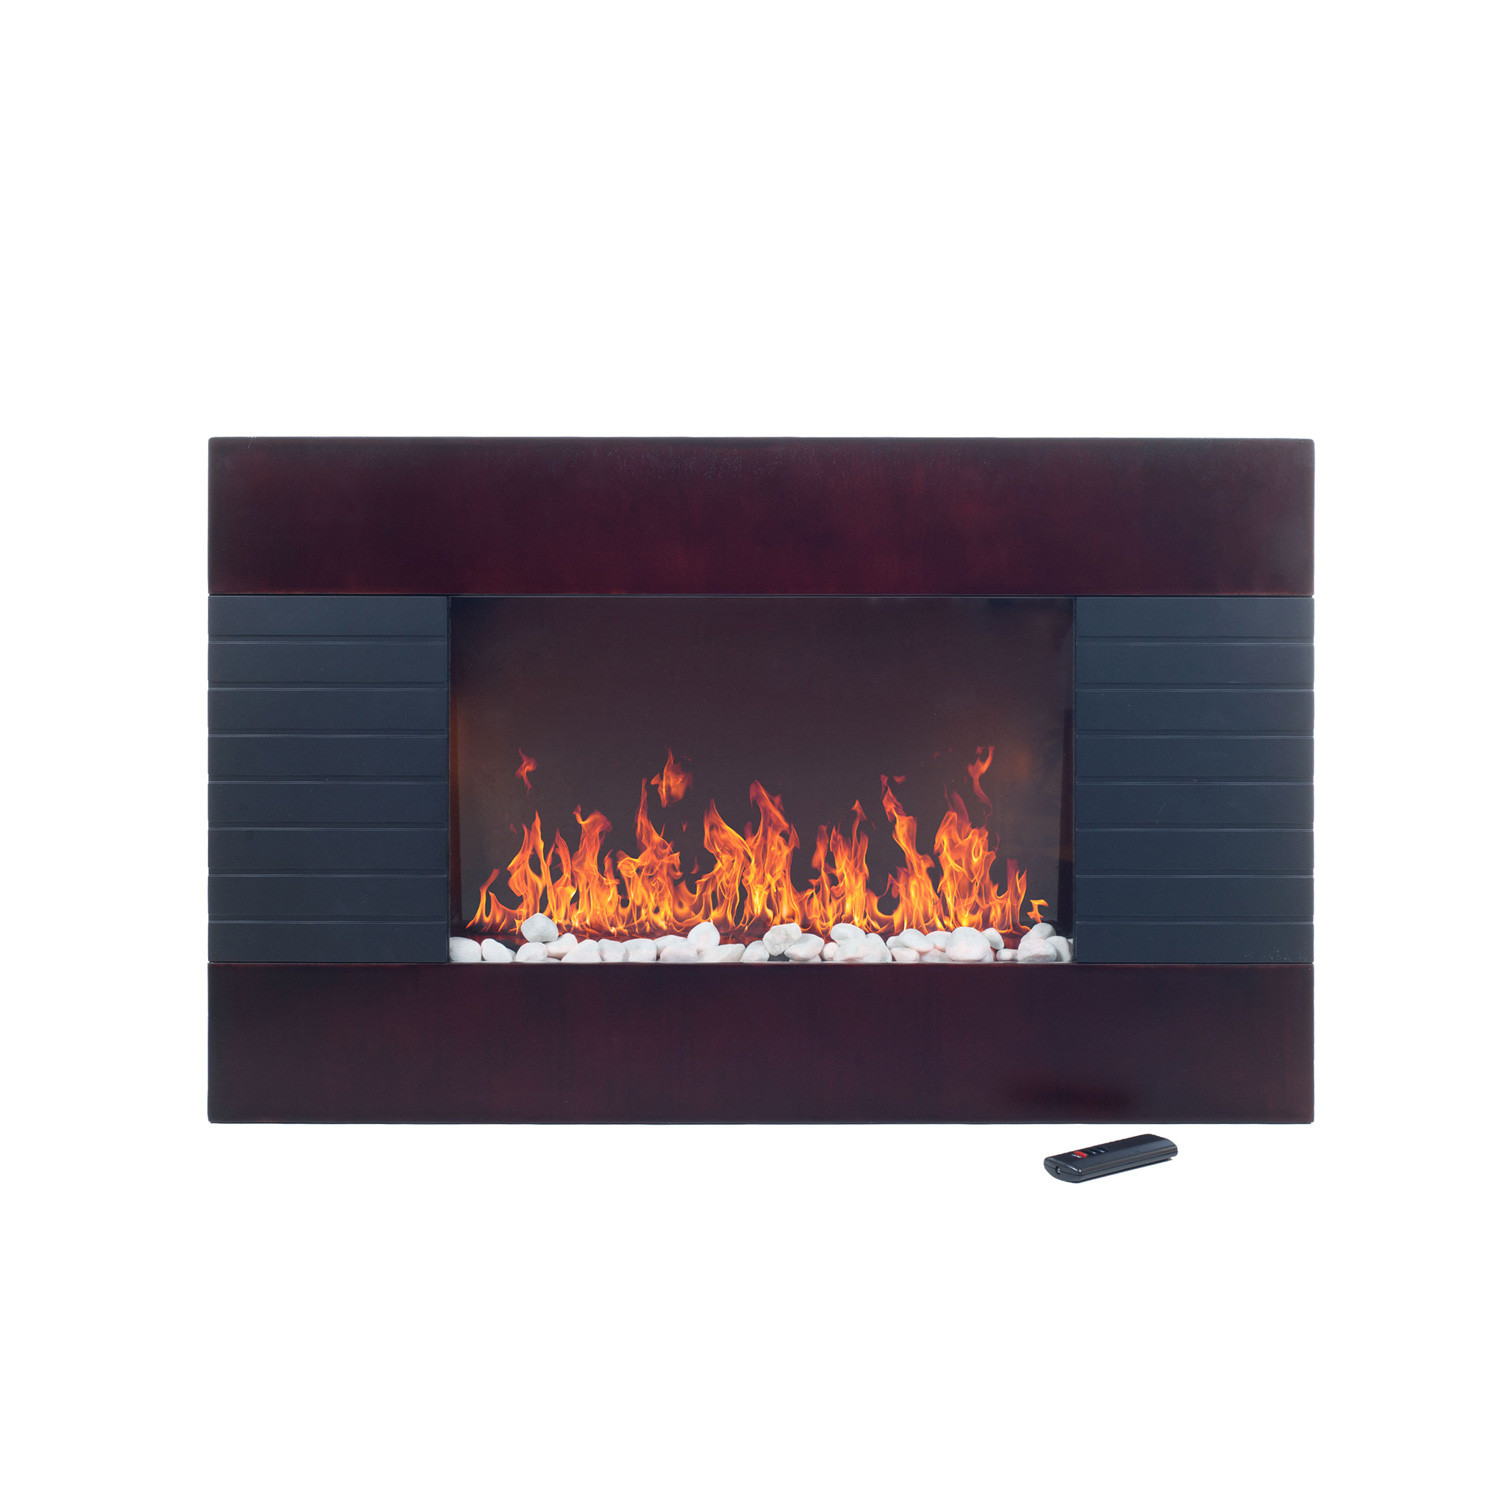 Bring the beauty and warmth of a fireplace to your living room with this stunning Mahogany Wood Trim Electric Fireplace Heater. Now you